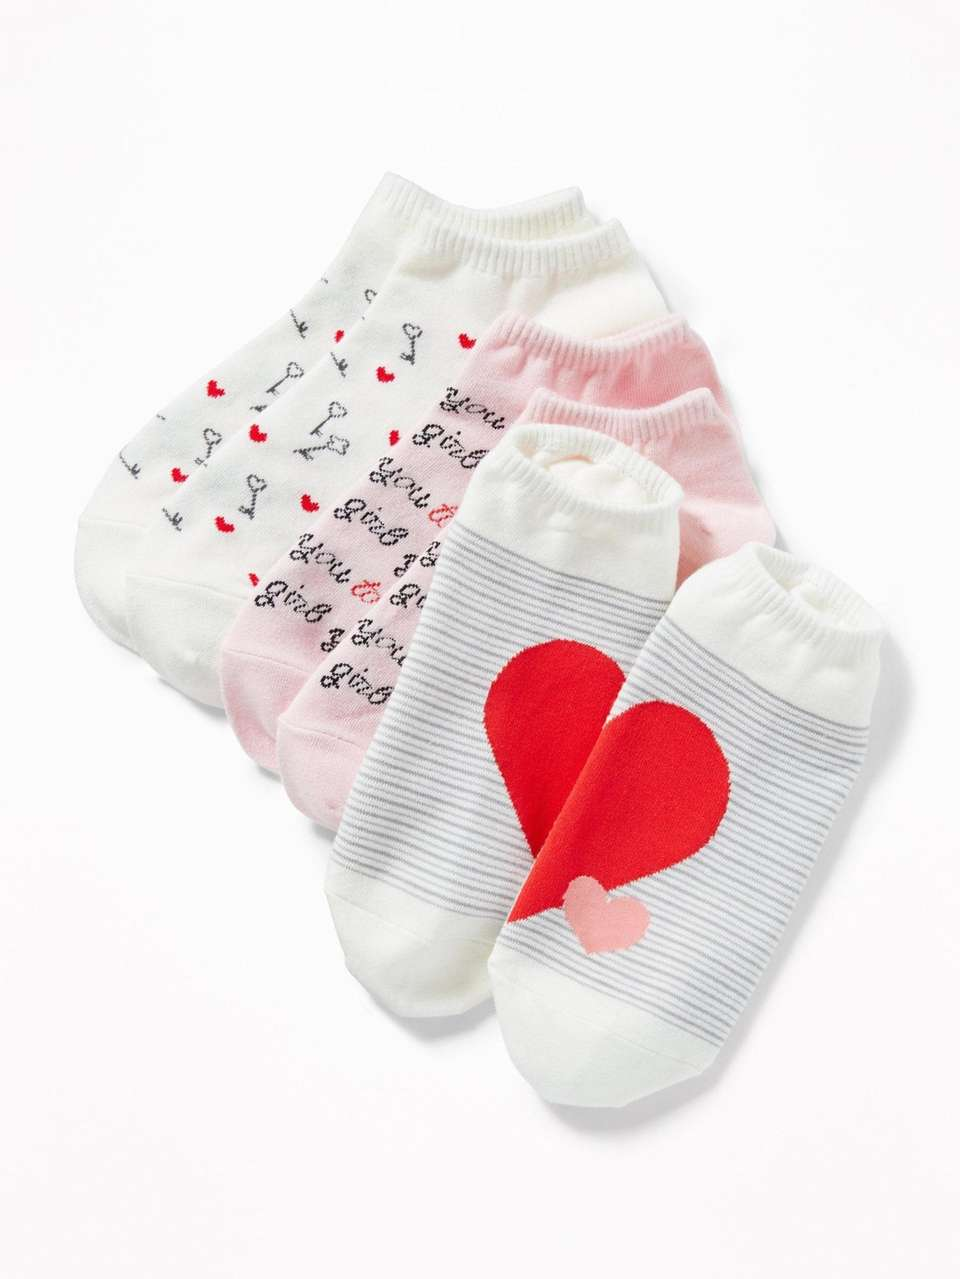 6fa38745bb2 Valentine s Day socks. This three-pack of ankle socks are made from